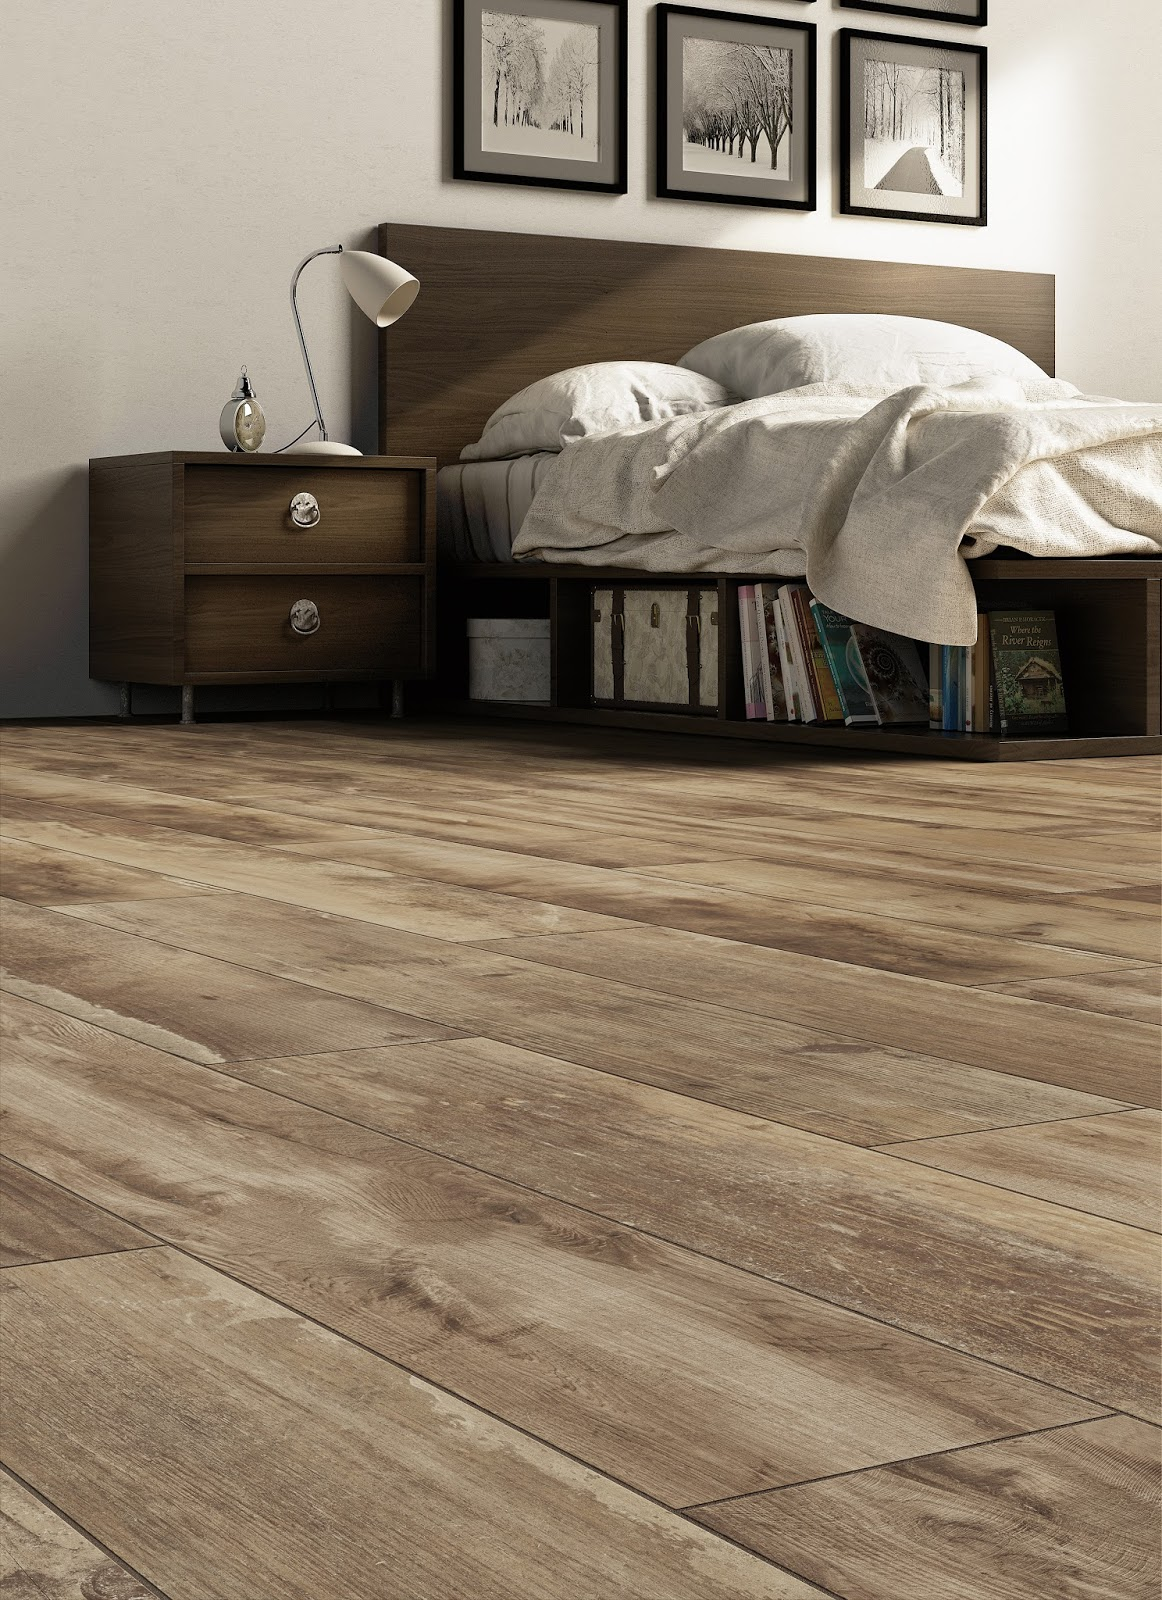 ISC Surfaces: Florida Tile's Relive Inspired by Rich Colors of Reclaimed  Wood - ISC Surfaces: Florida Tile's Relive Inspired By Rich Colors Of